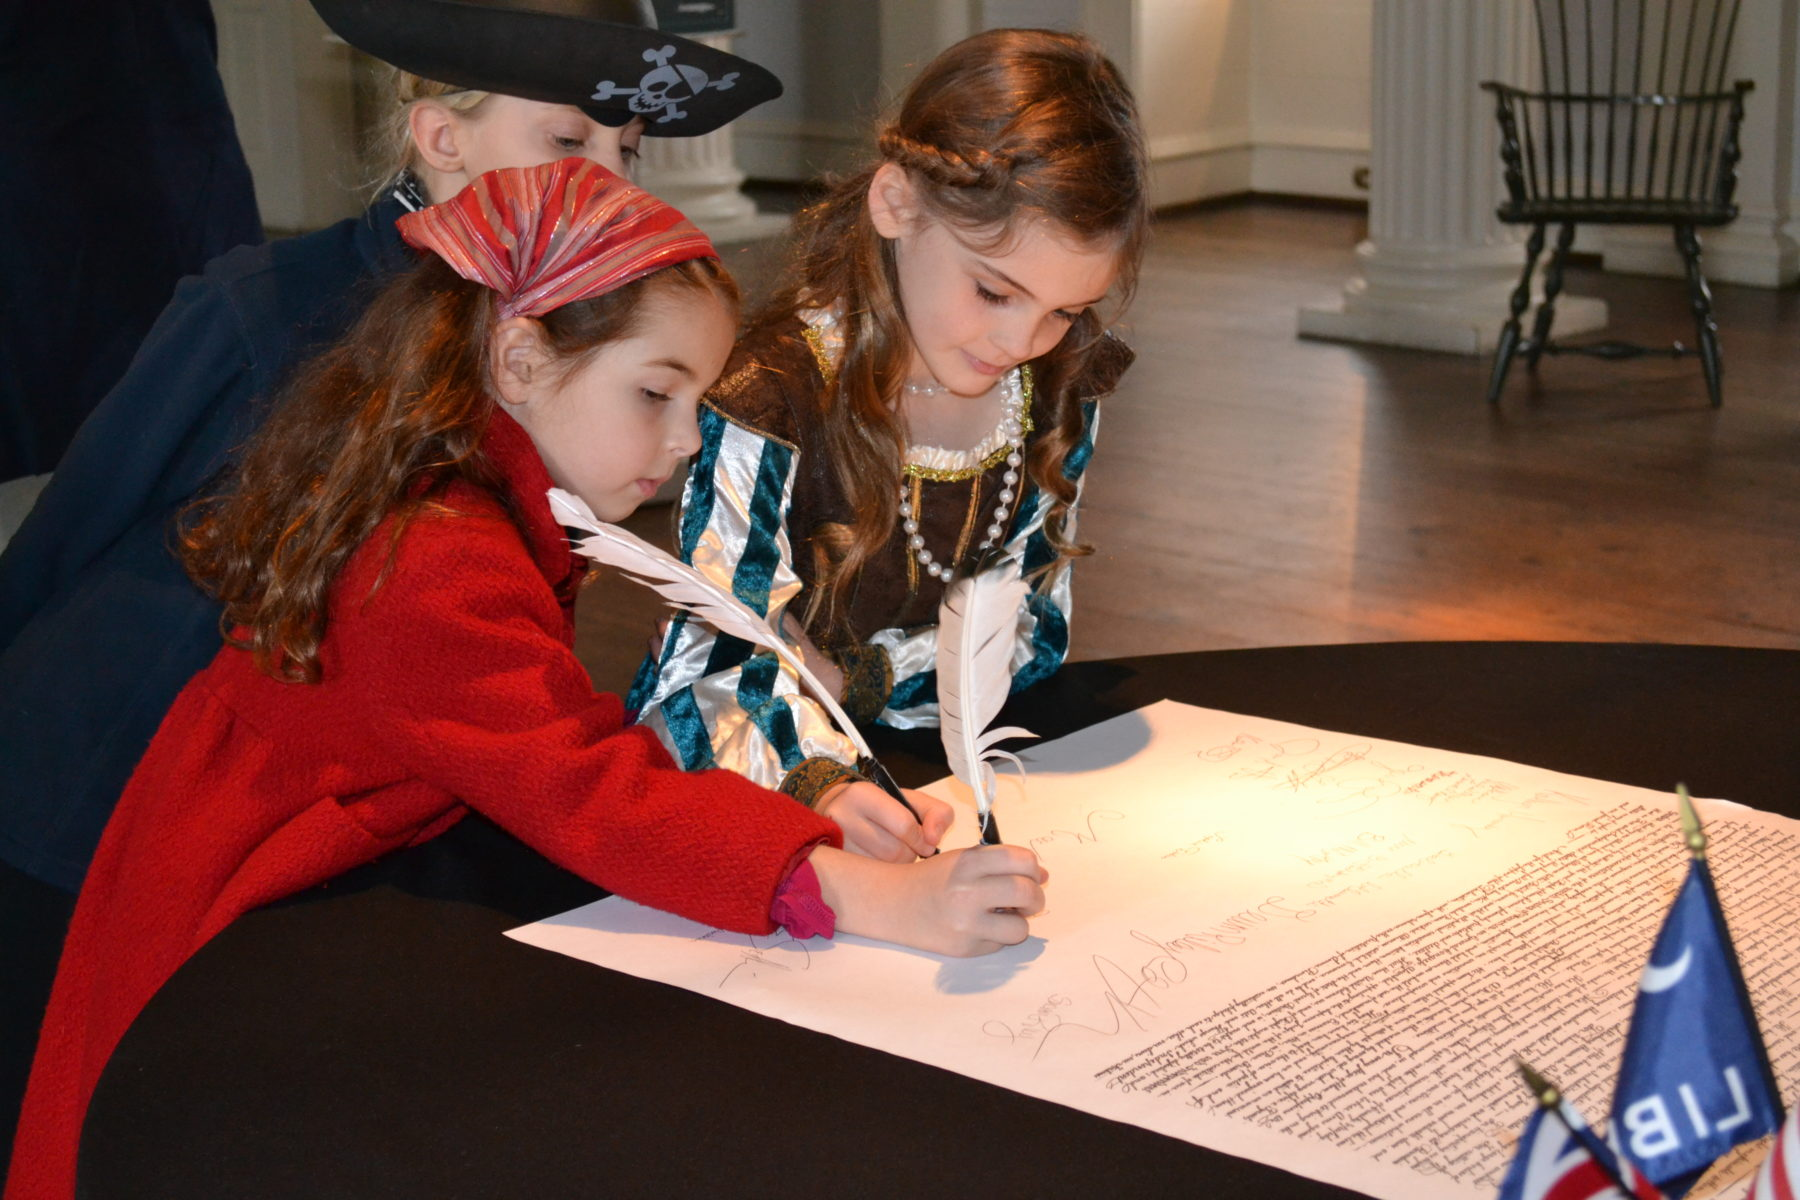 two girls in costume signing a document